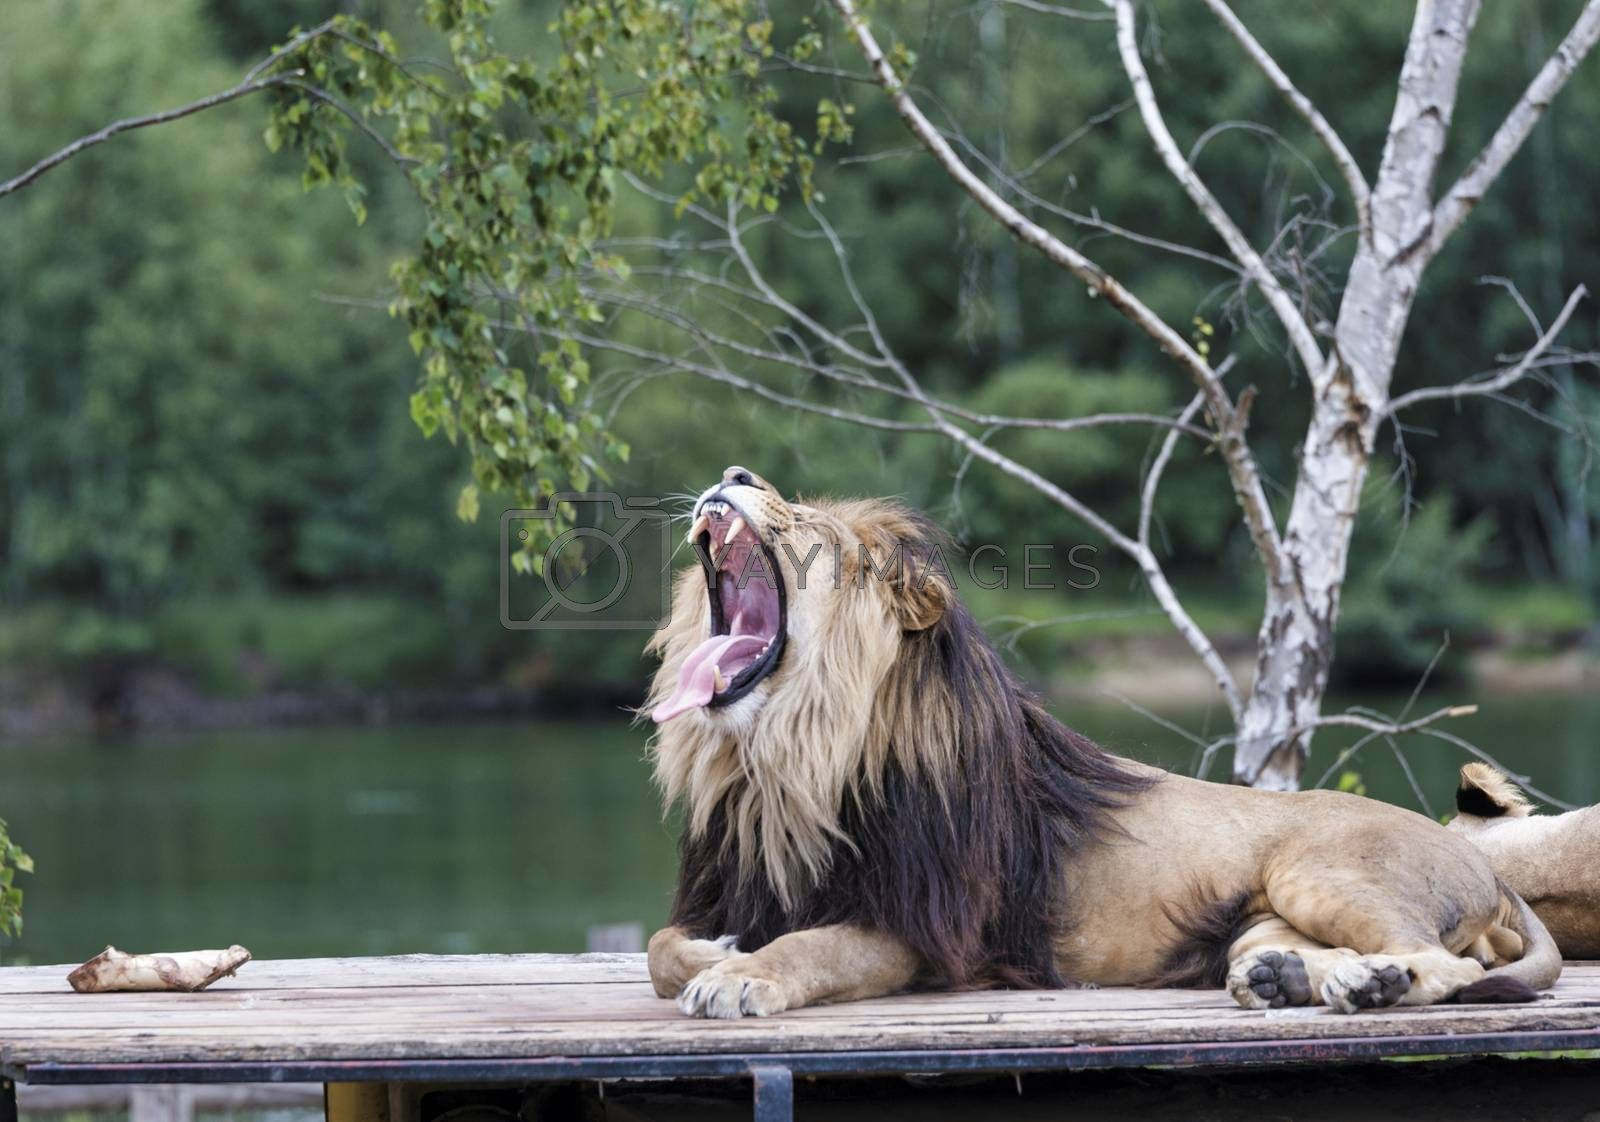 roaring lion on top of car by compuinfoto